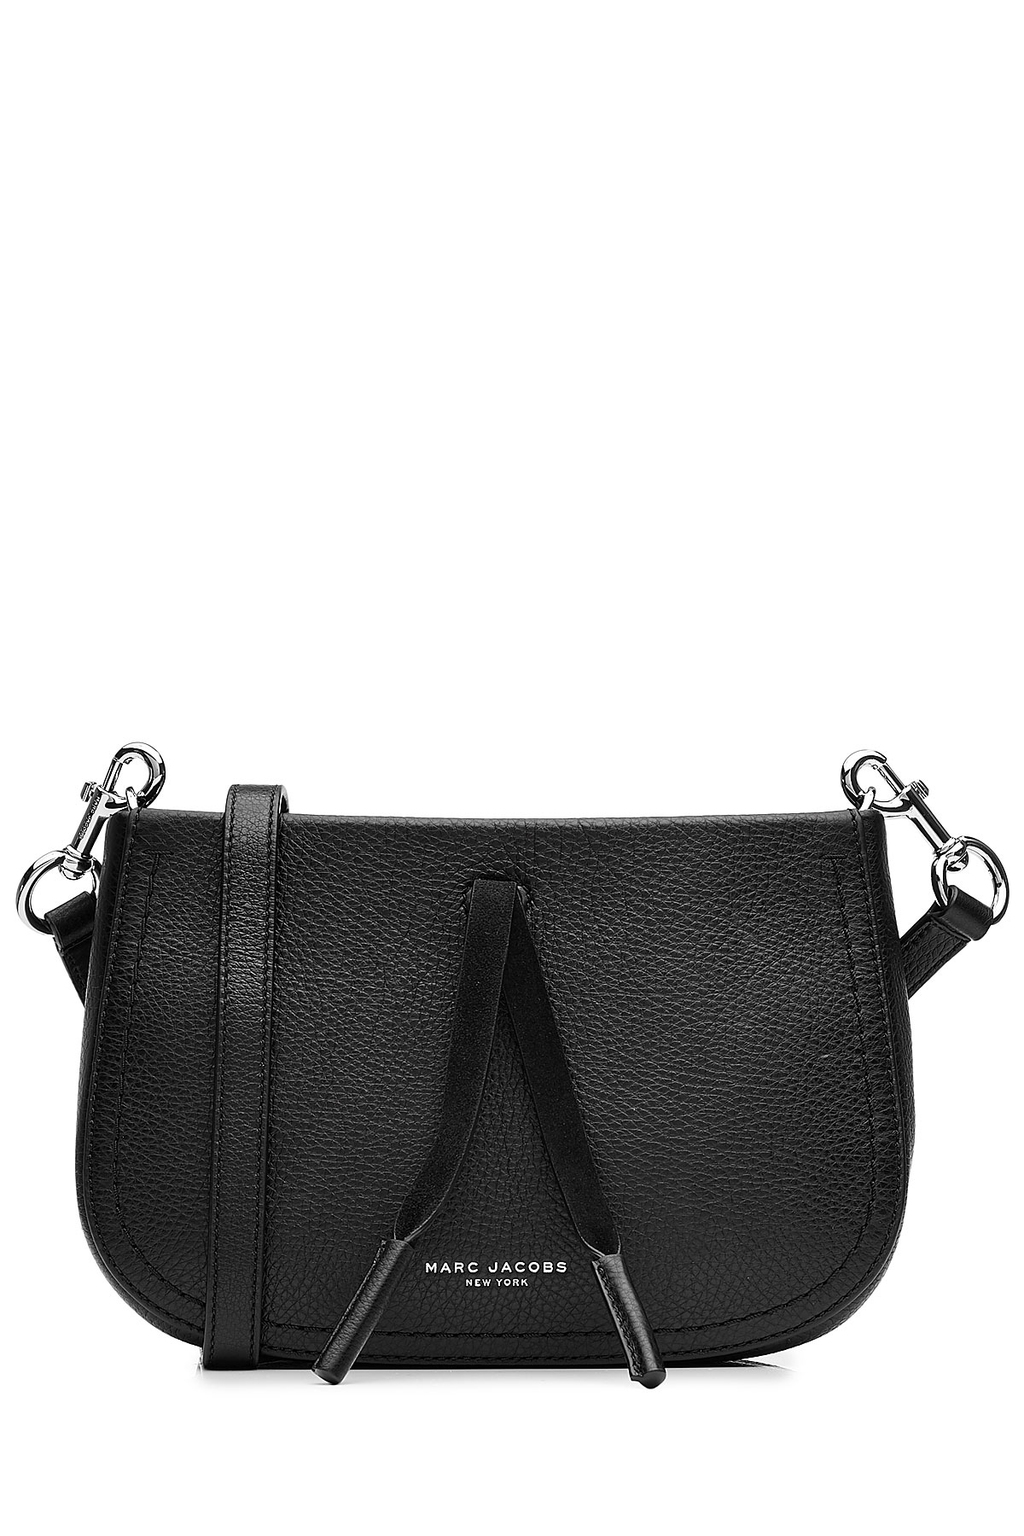 Leather Shoulder Bag Black - predominant colour: black; occasions: casual, creative work; type of pattern: standard; style: shoulder; length: across body/long; size: standard; material: leather; pattern: plain; finish: plain; wardrobe: investment; season: a/w 2016